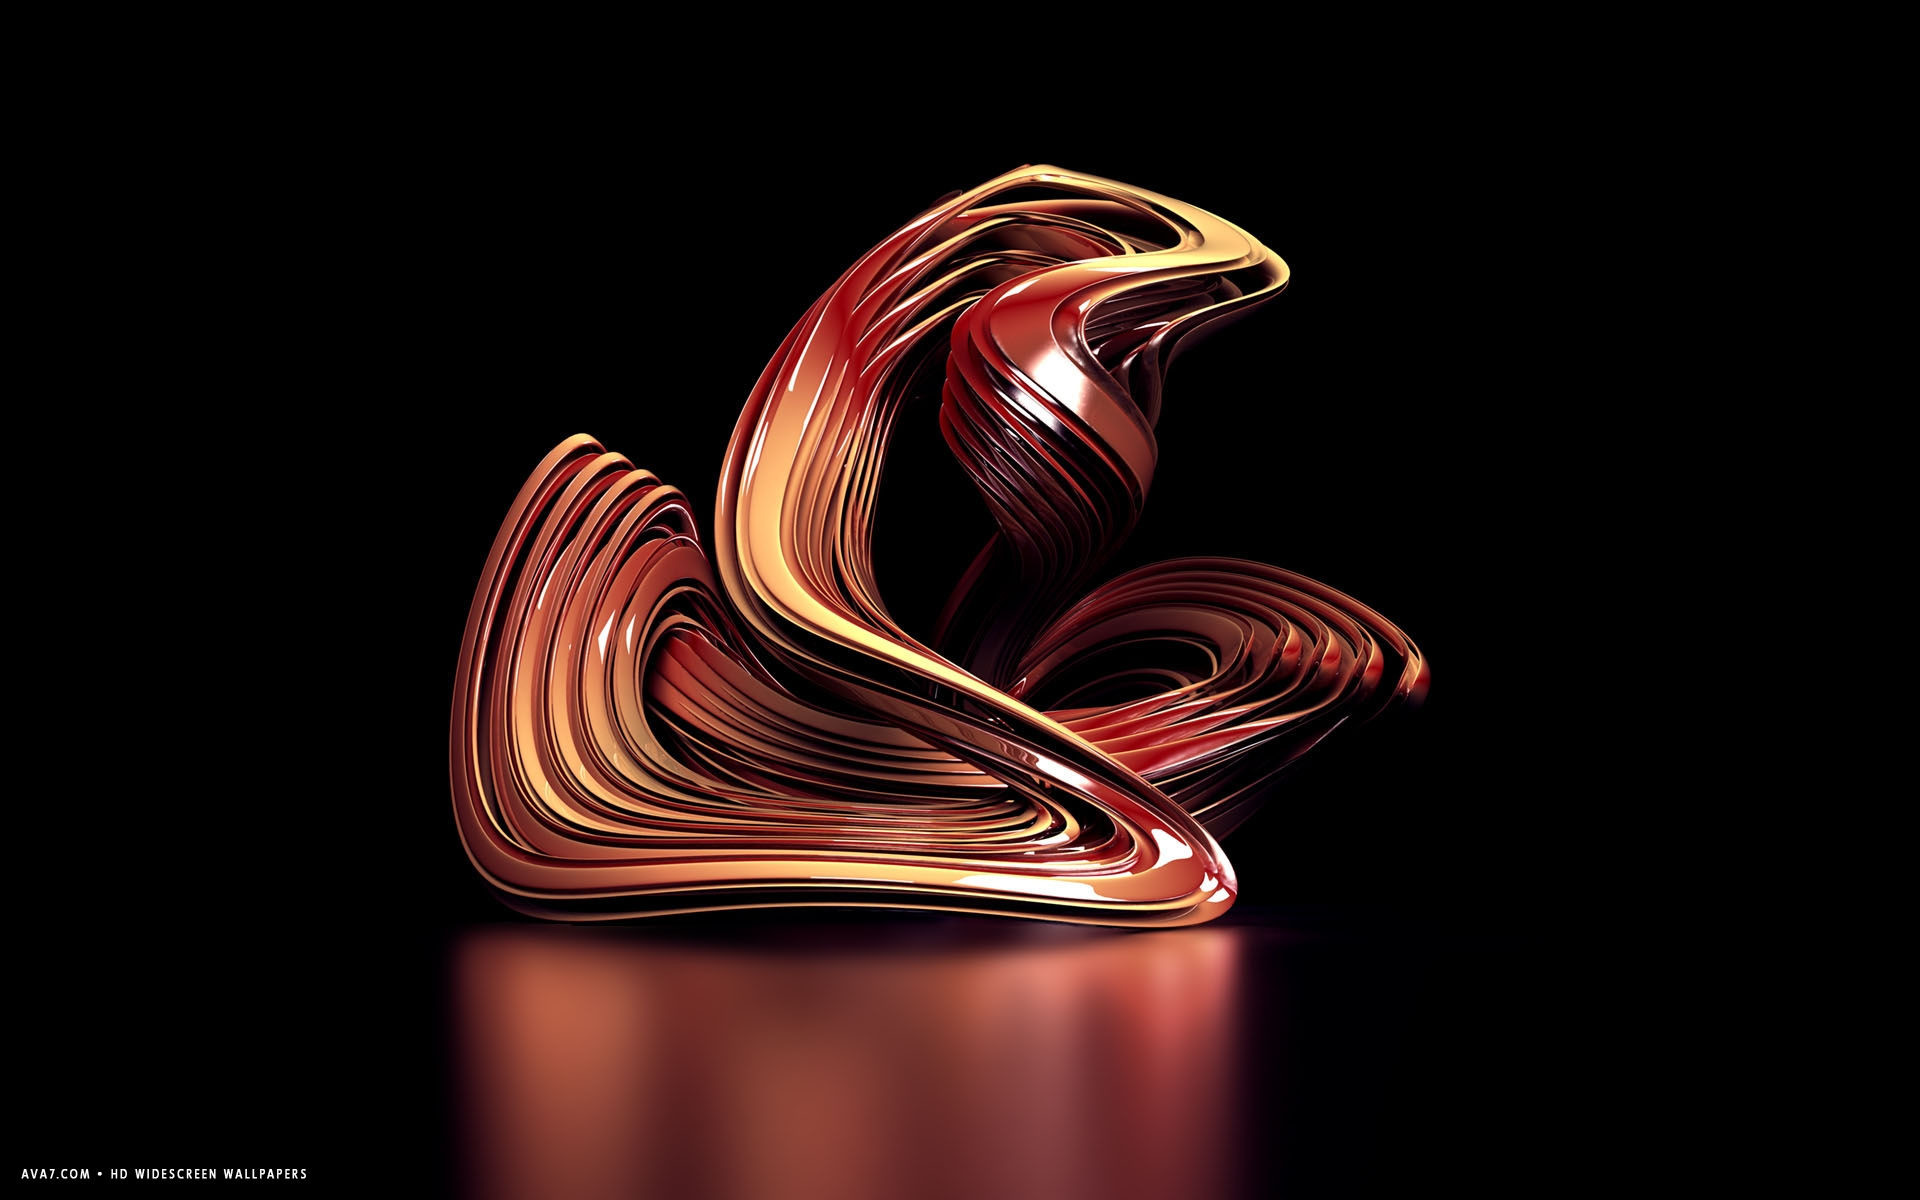 Res: 1920x1200, 3d sculpture red abstract shape hd widescreen wallpaper